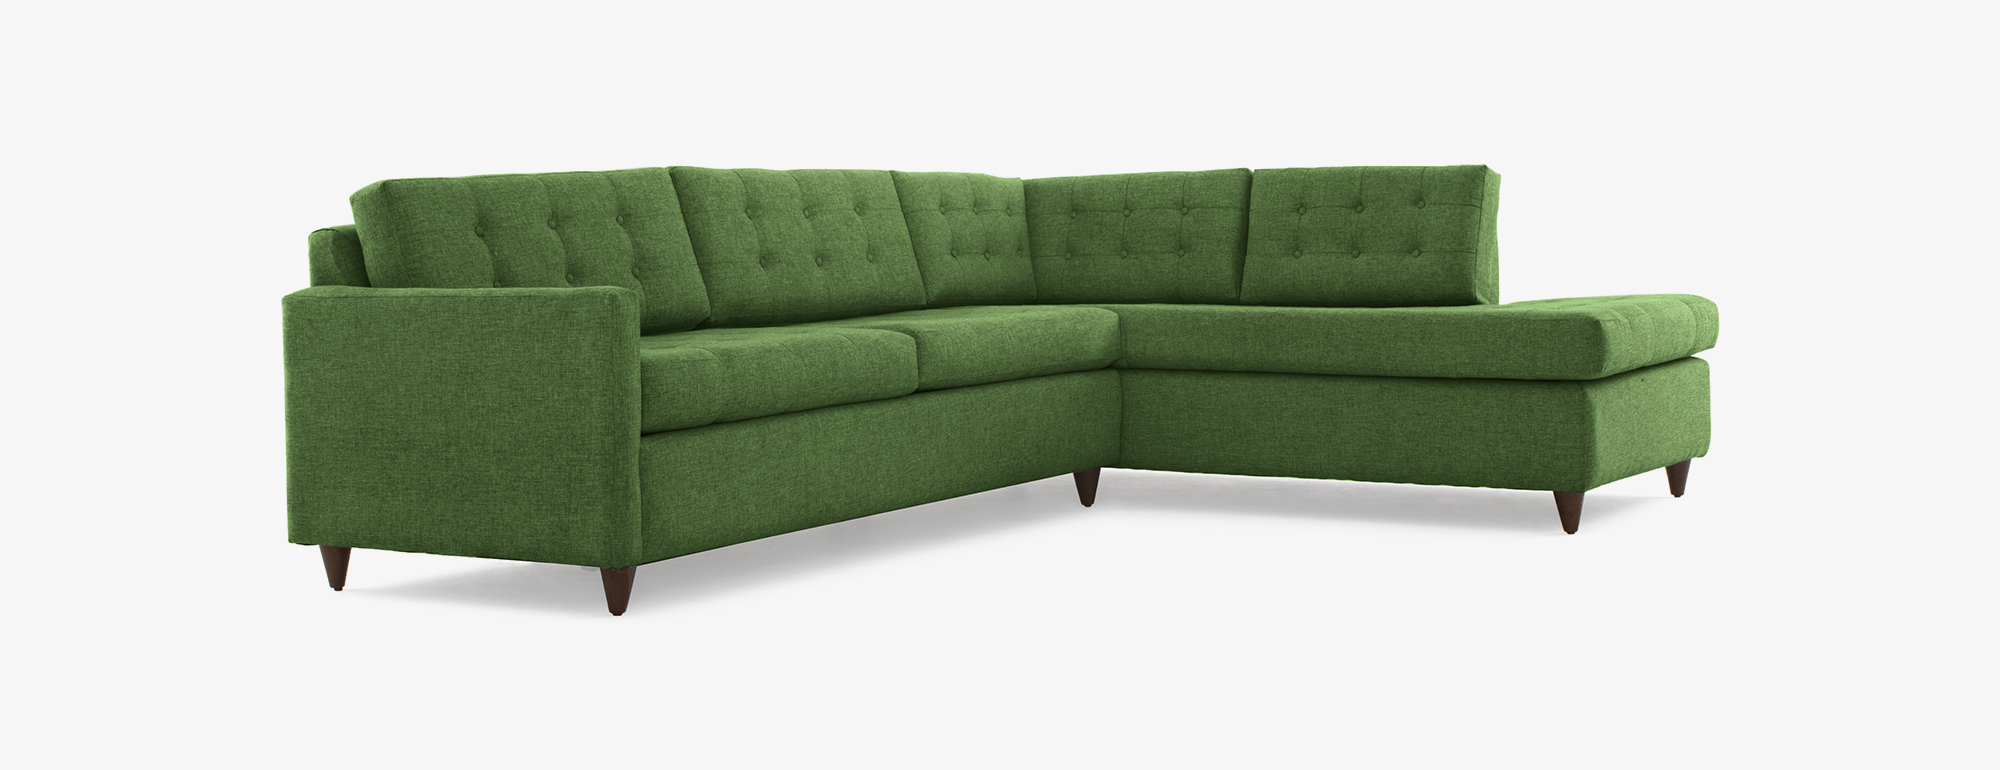 Stunning sleeper sectional shown in key largo kelly green fabric crmahbz